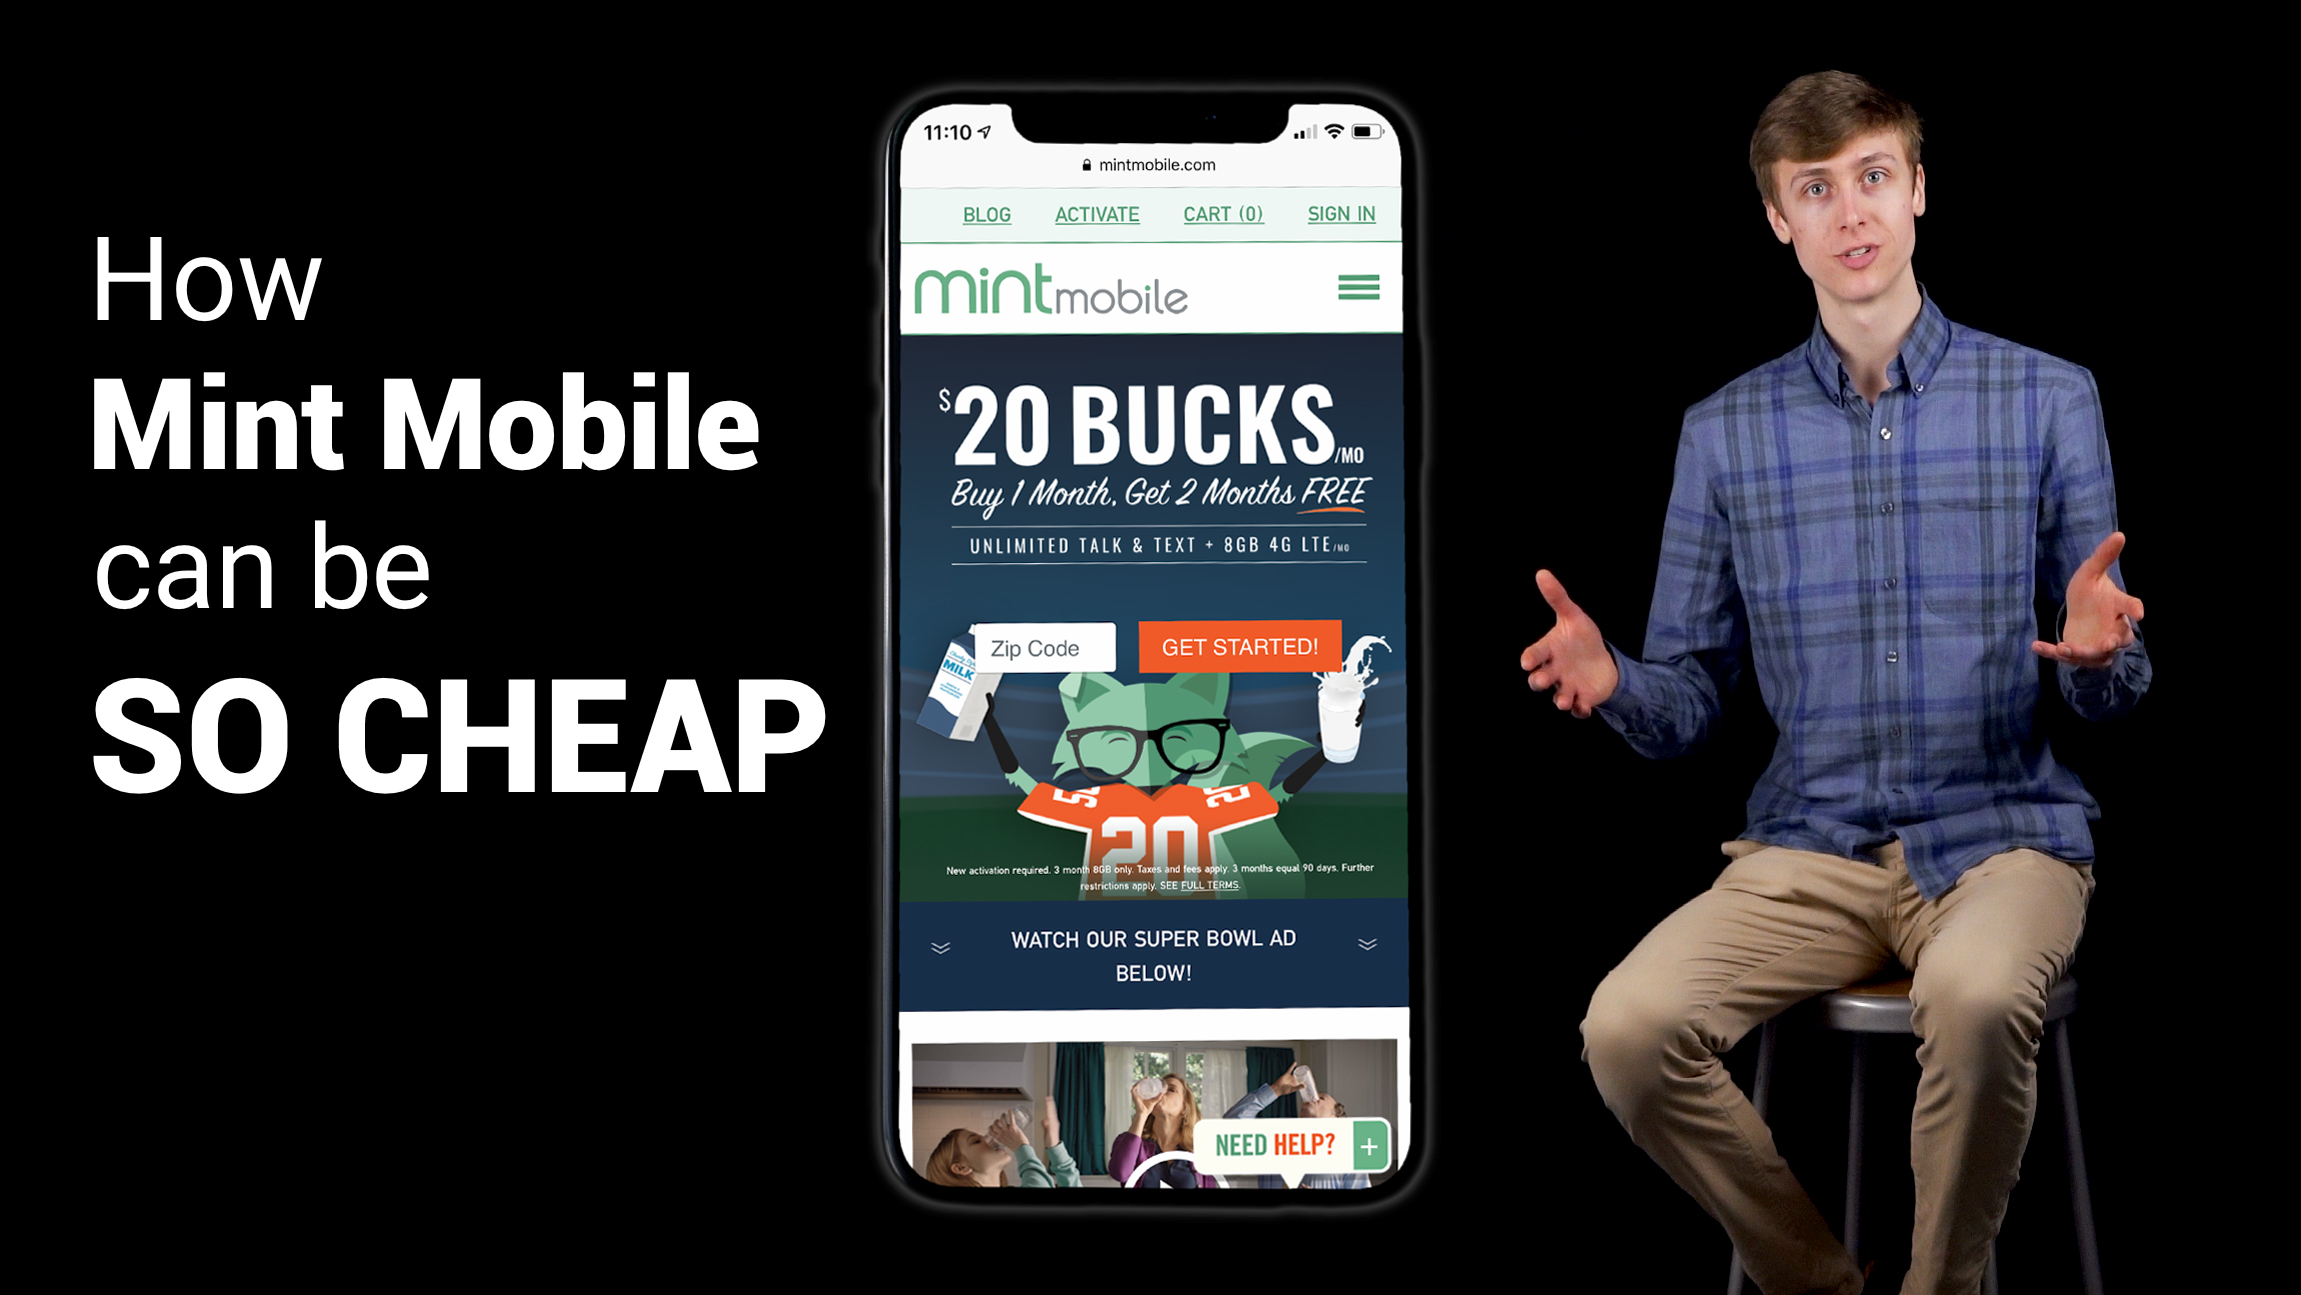 image of iPhone XS on Mint Mobile website with young male sitting to the right of it